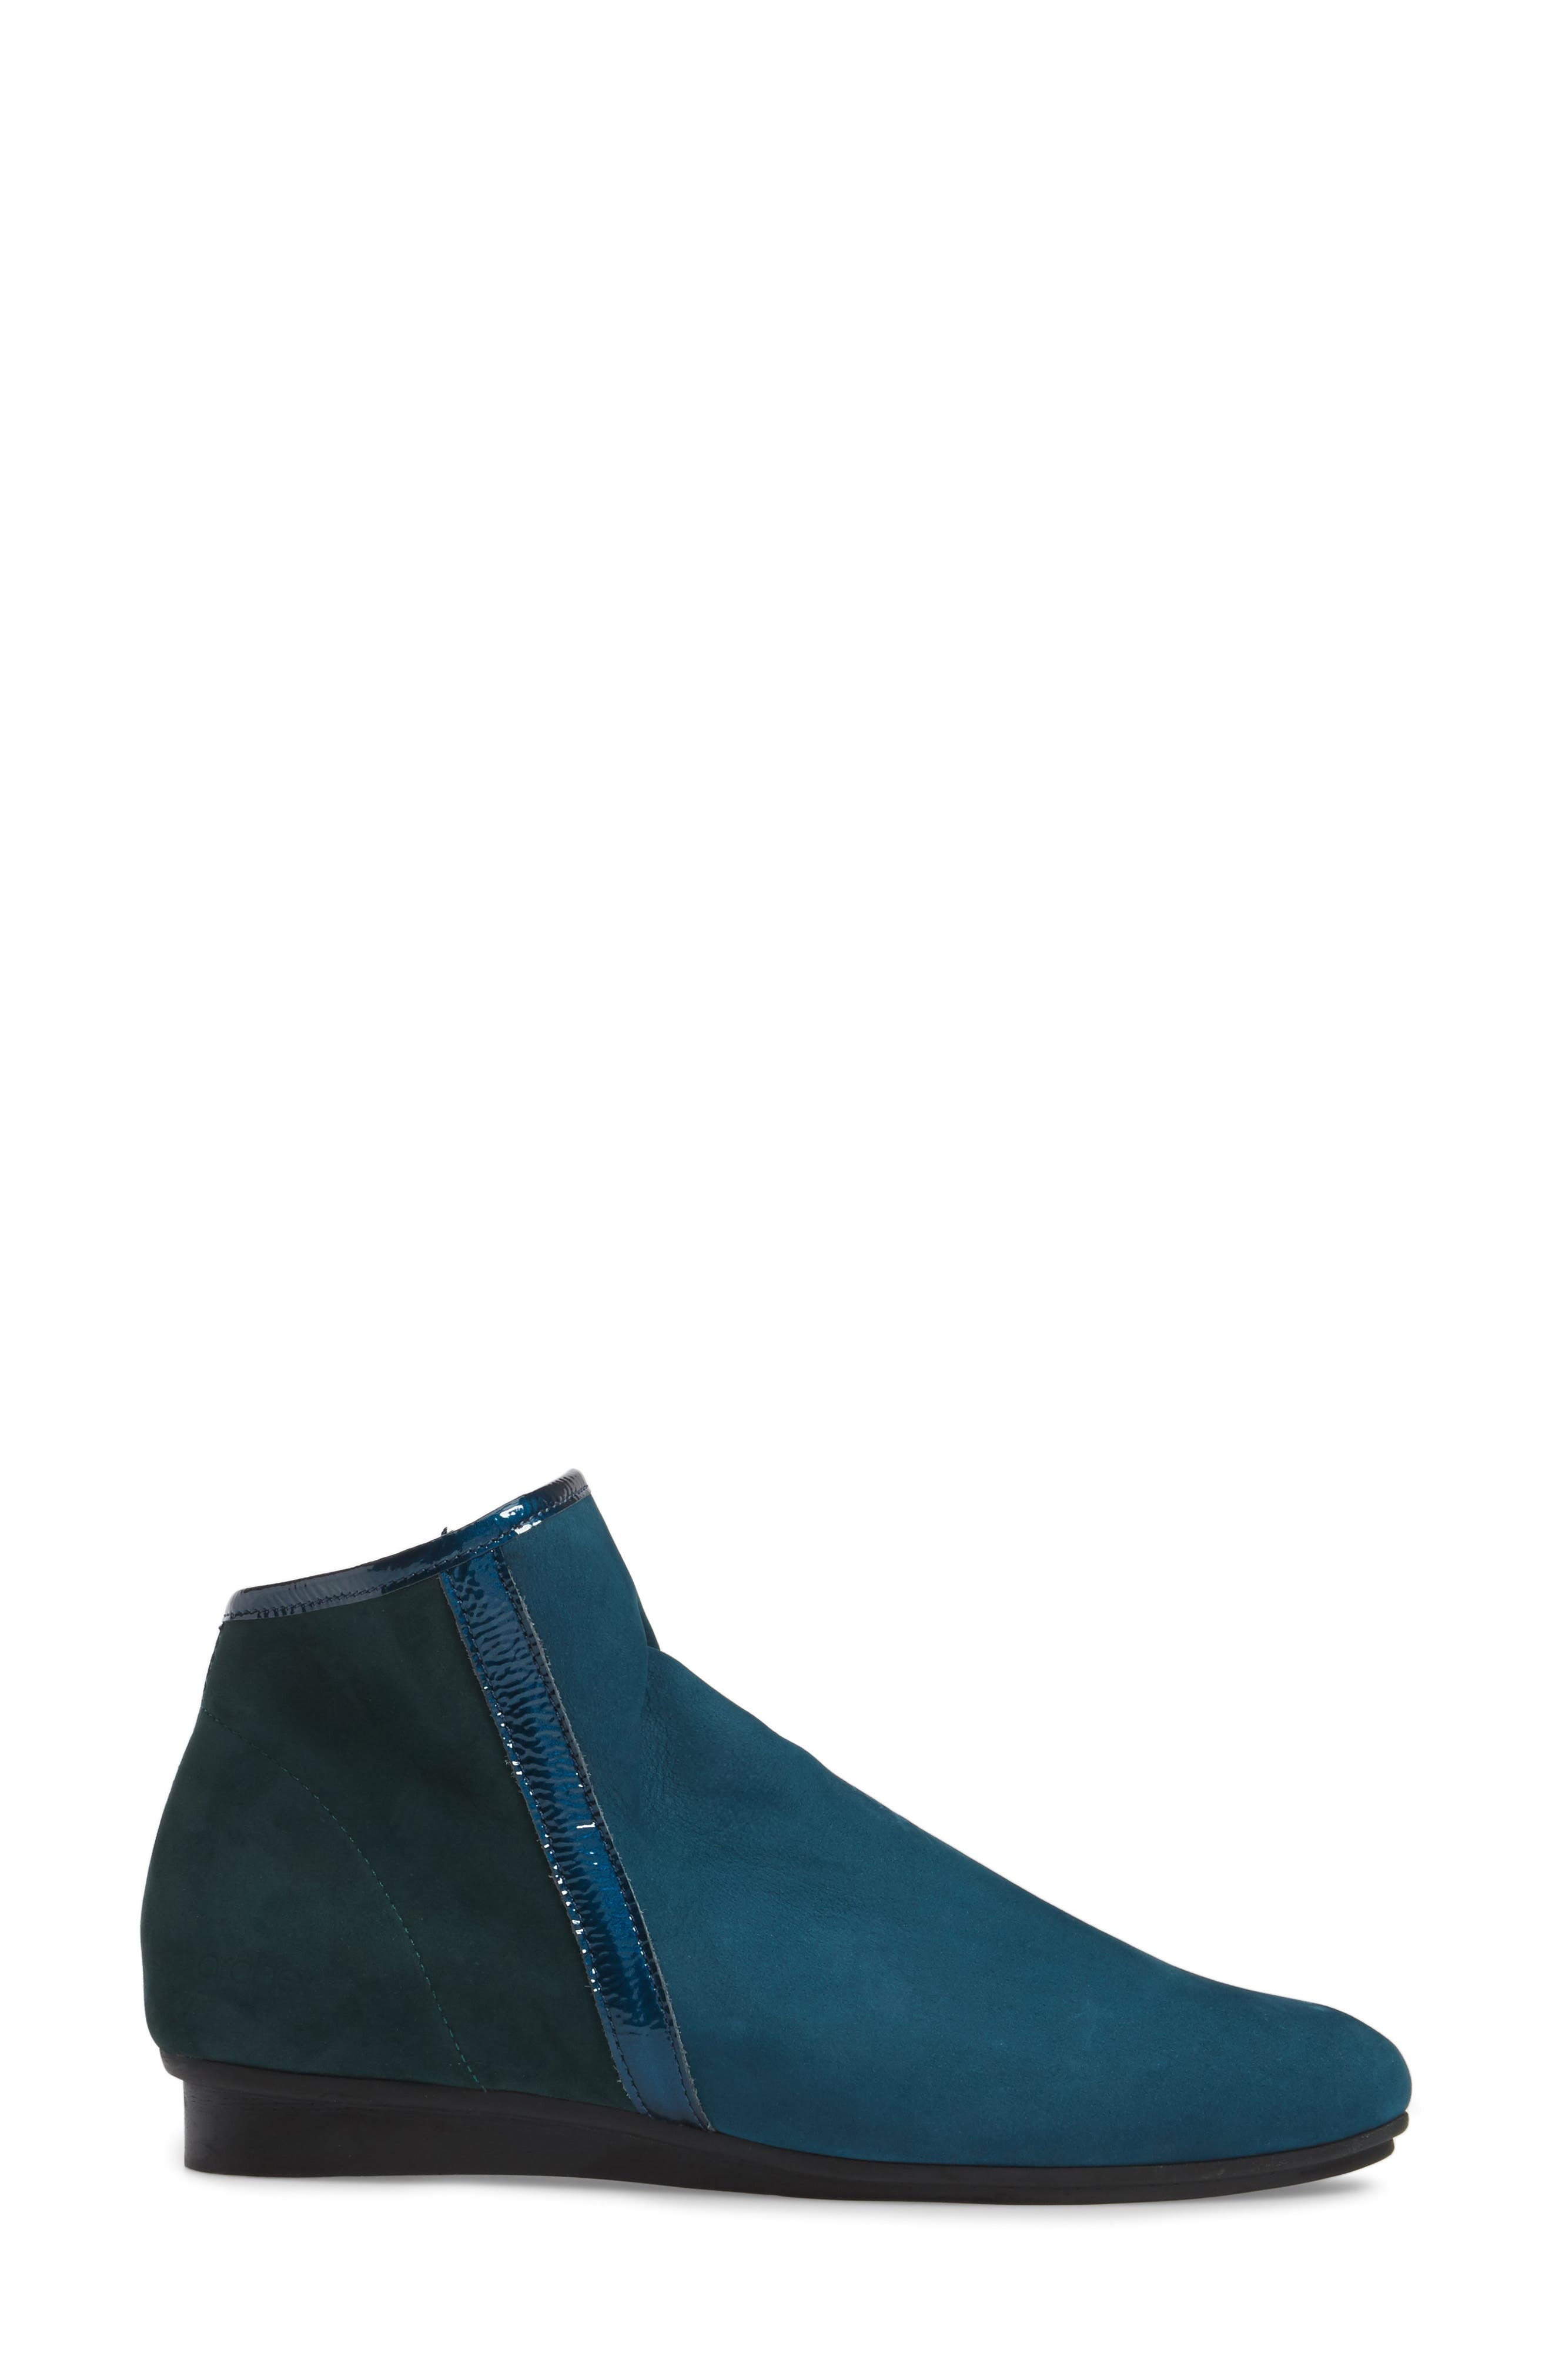 Ninote Bootie,                             Alternate thumbnail 8, color,